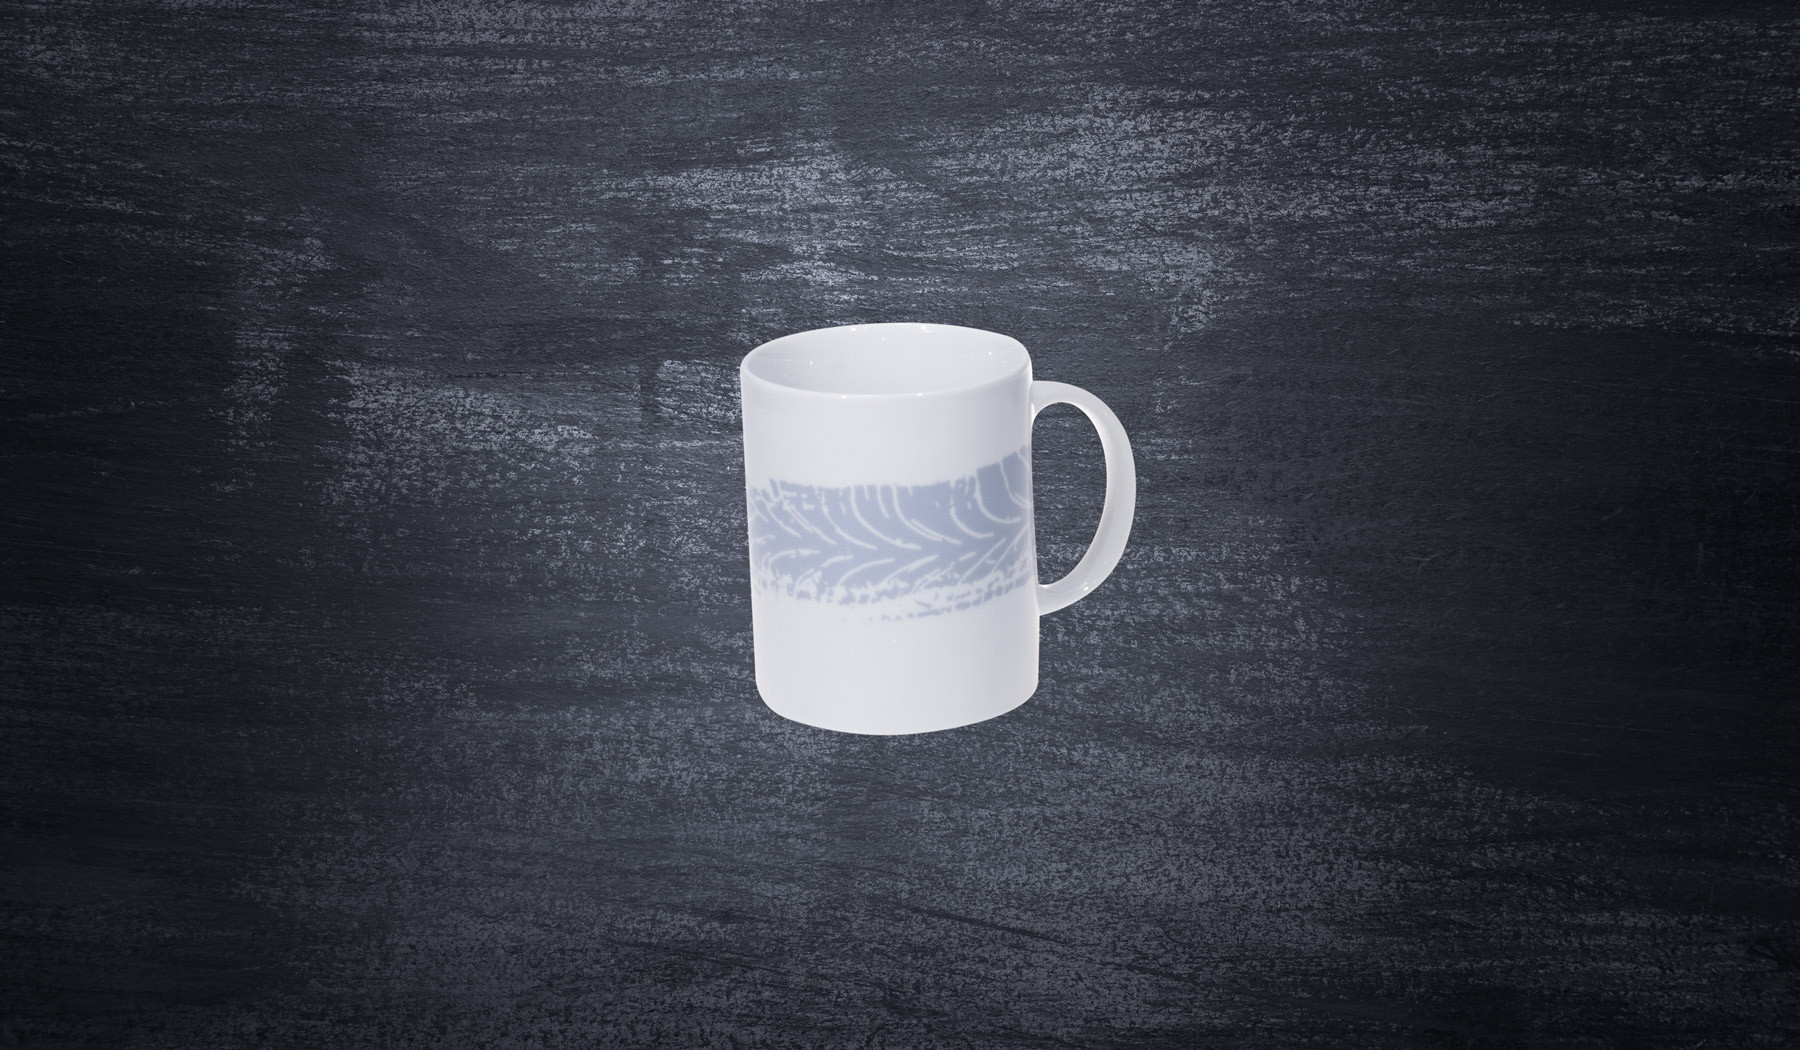 DMEC porcelain mug with trace of a tire white